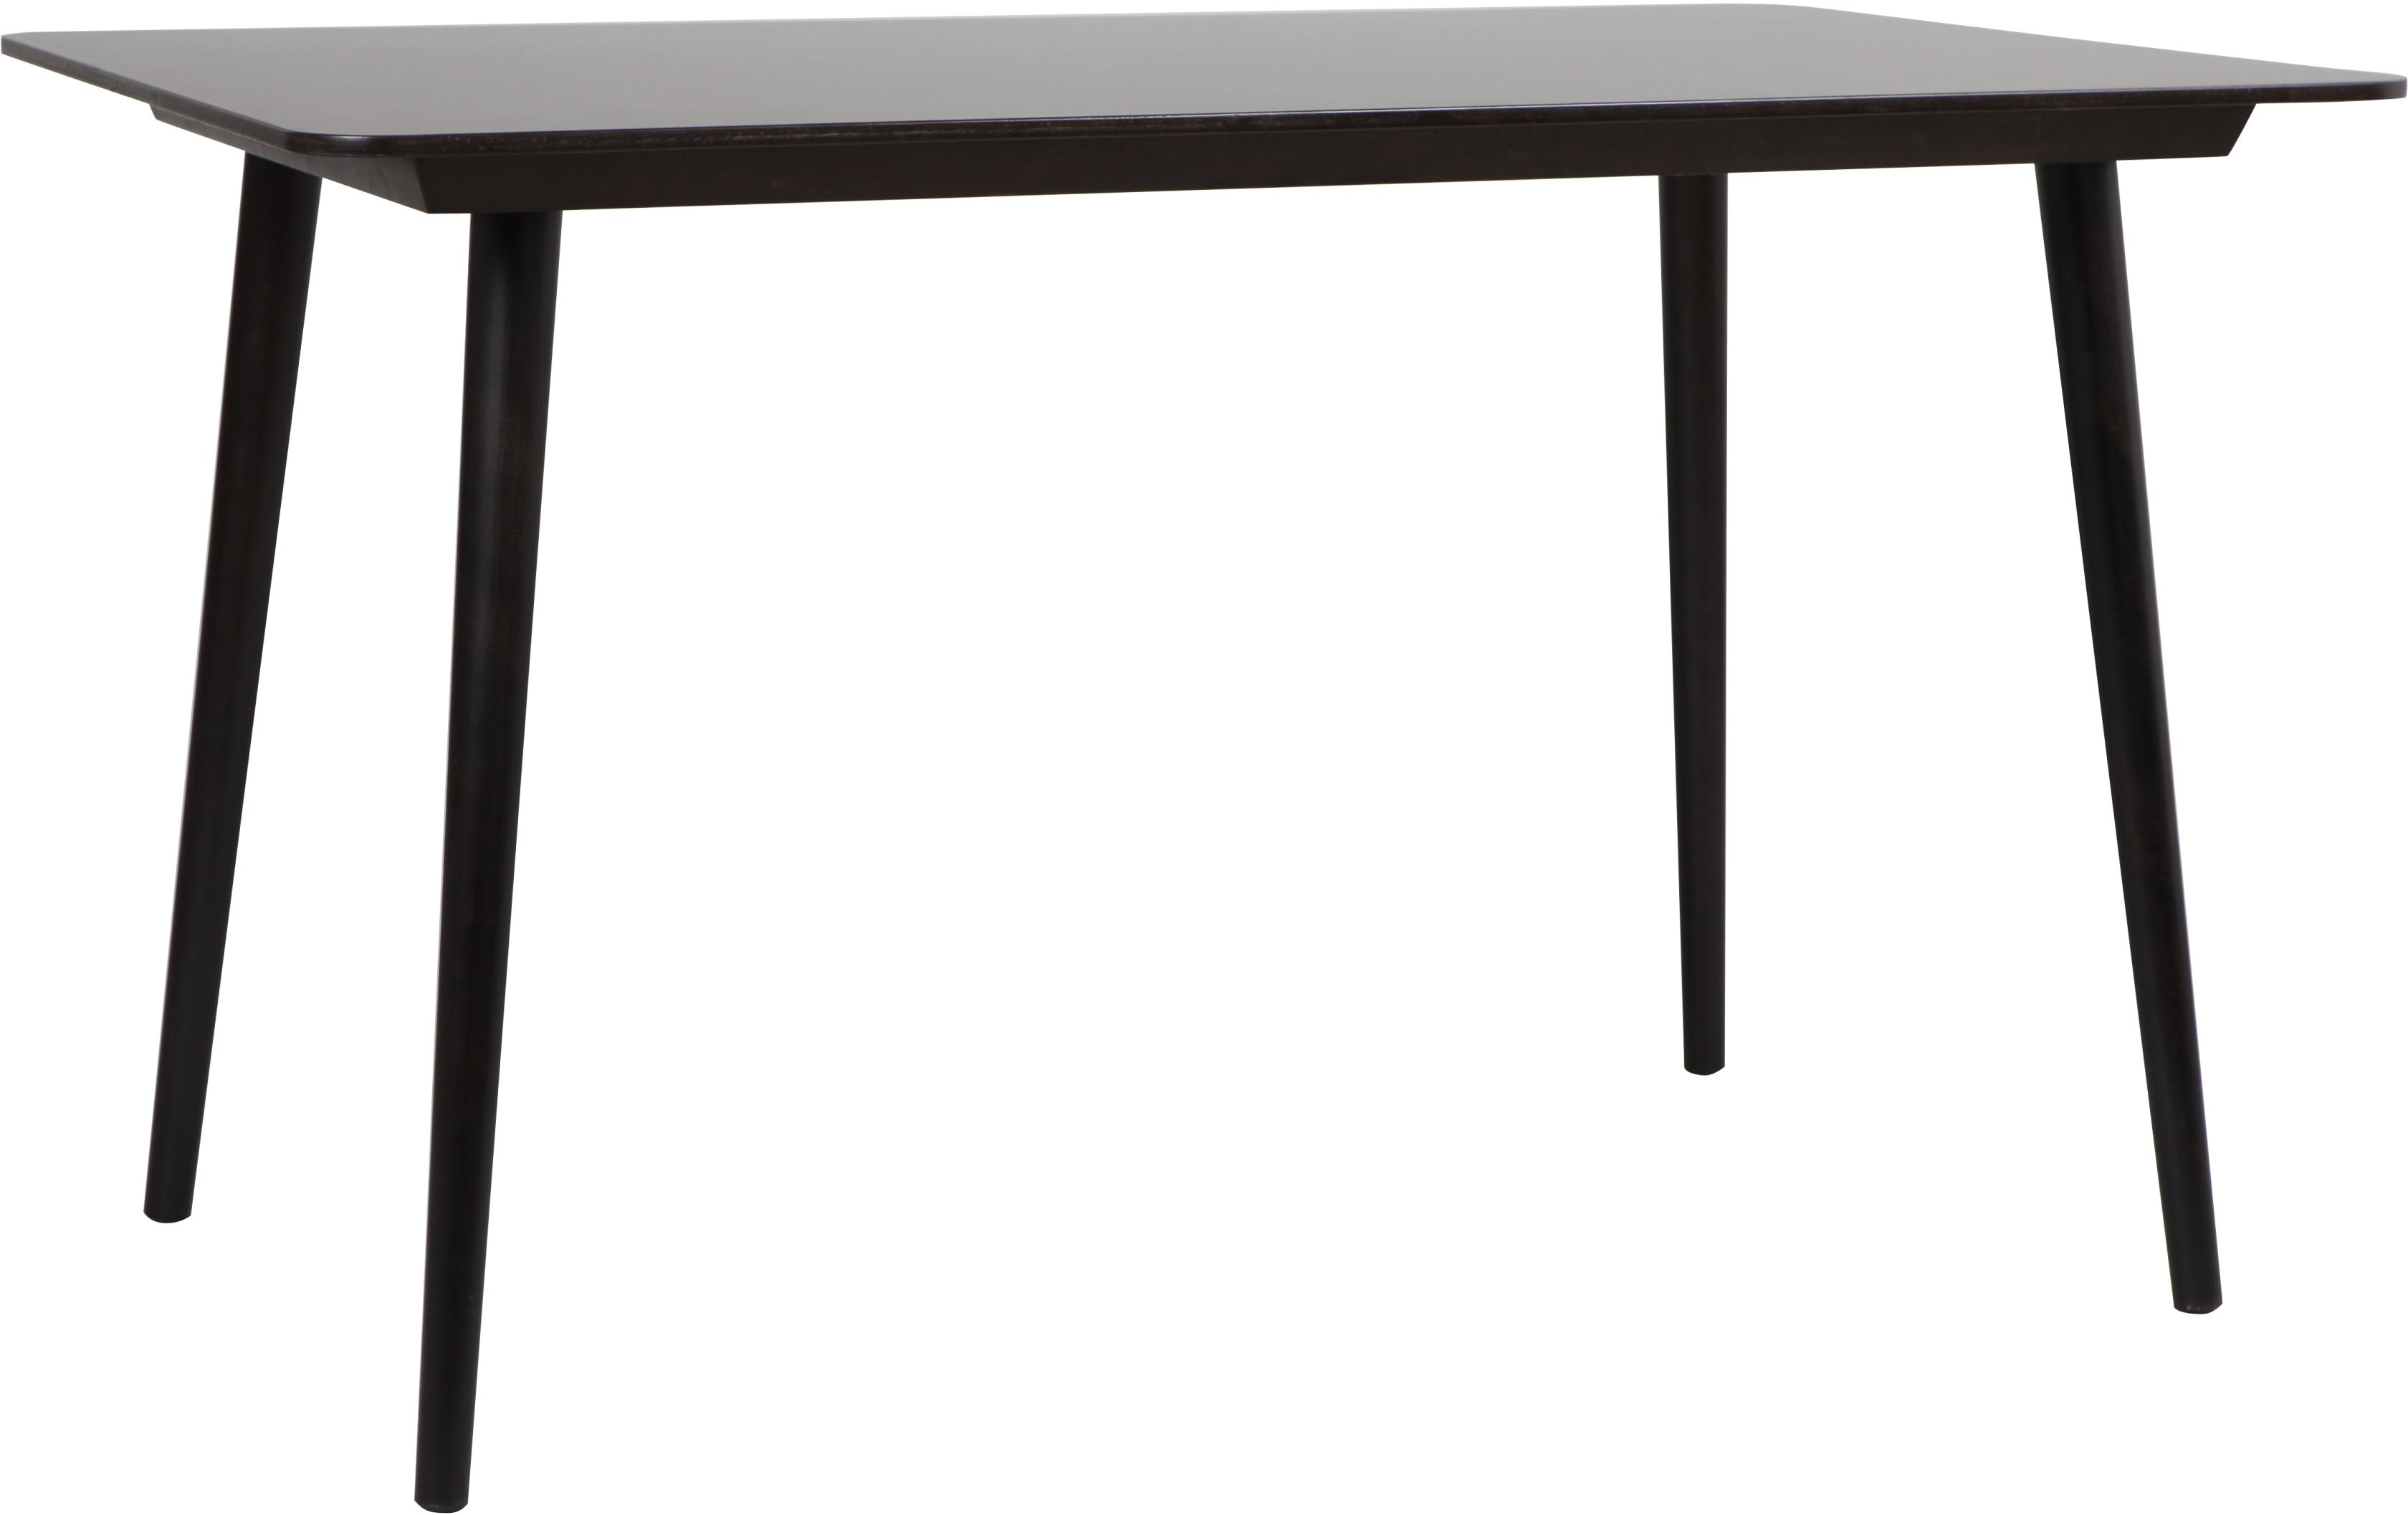 Beech Black Grain Ironica Table 80x120, TON